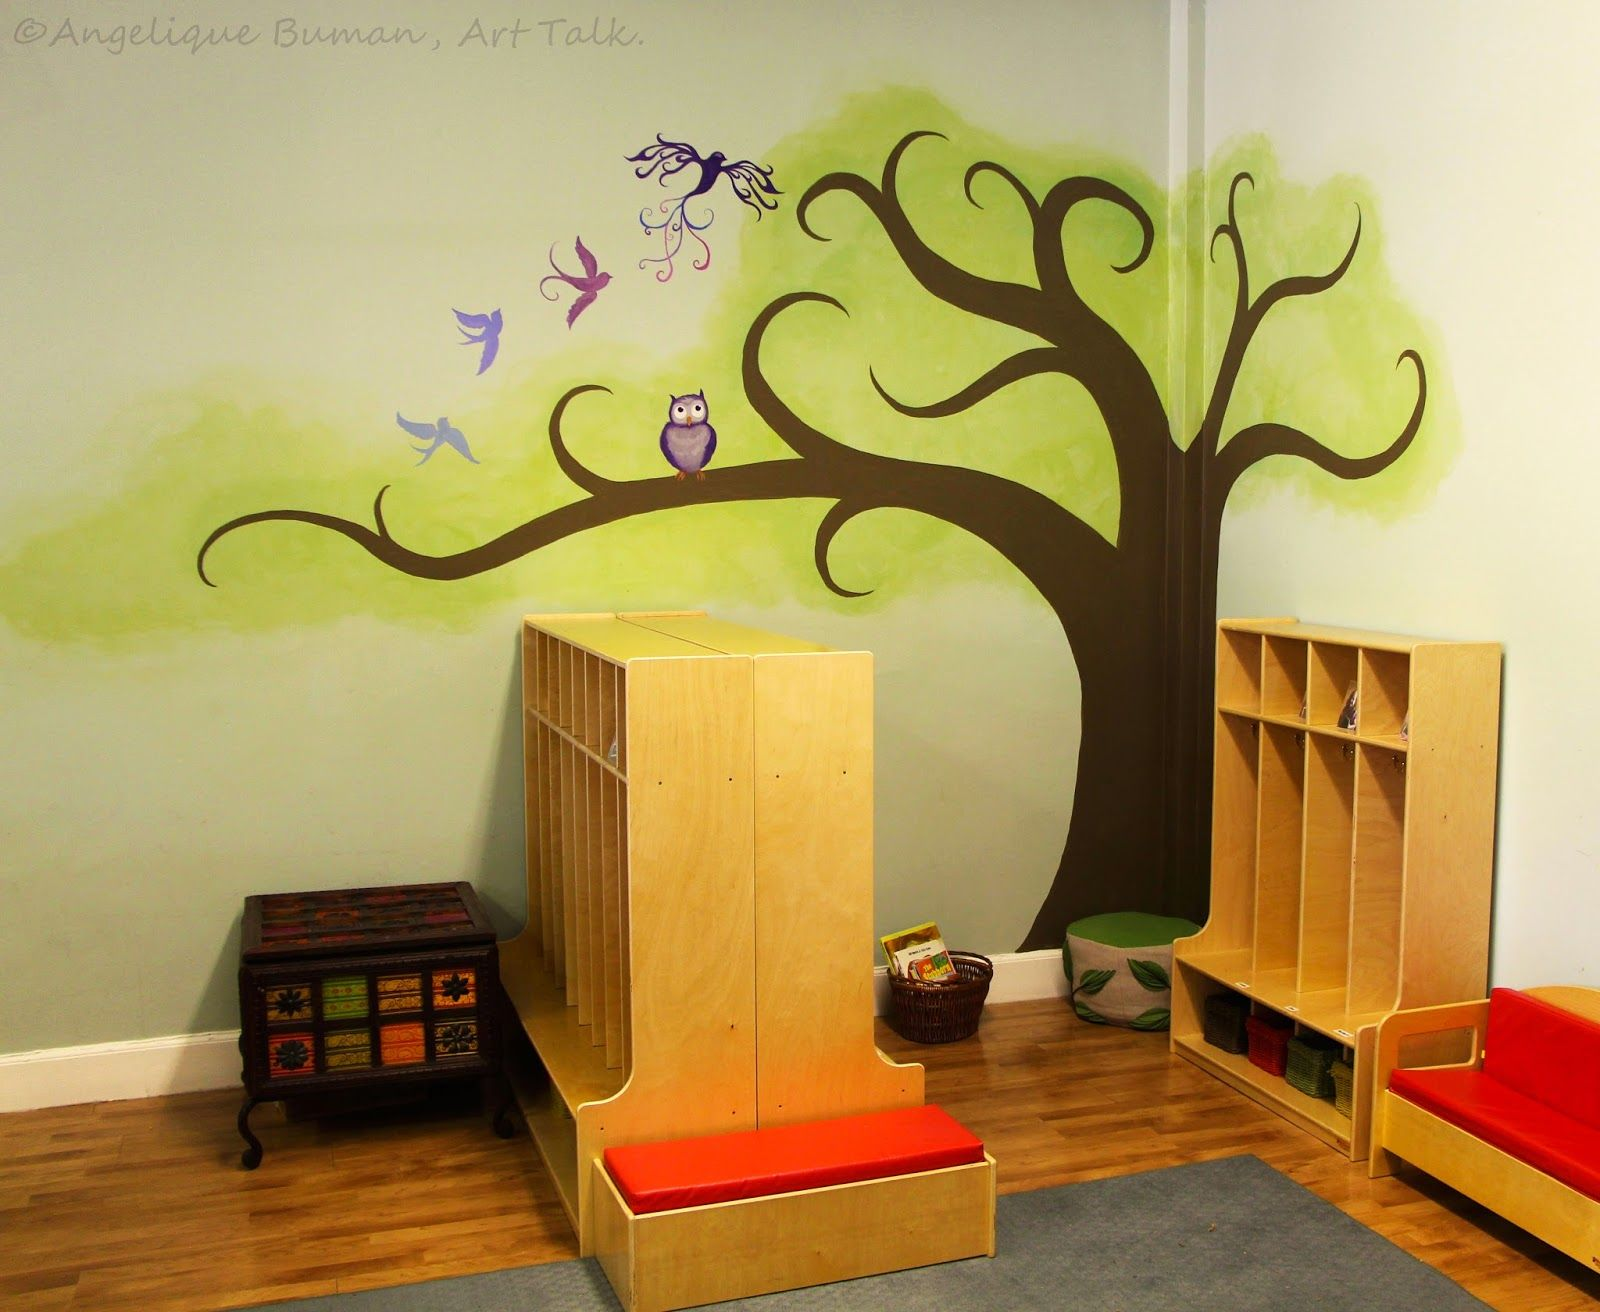 Angelique Buman, Art Talk.: Tutorial on How to Paint a Tree Mural to ...